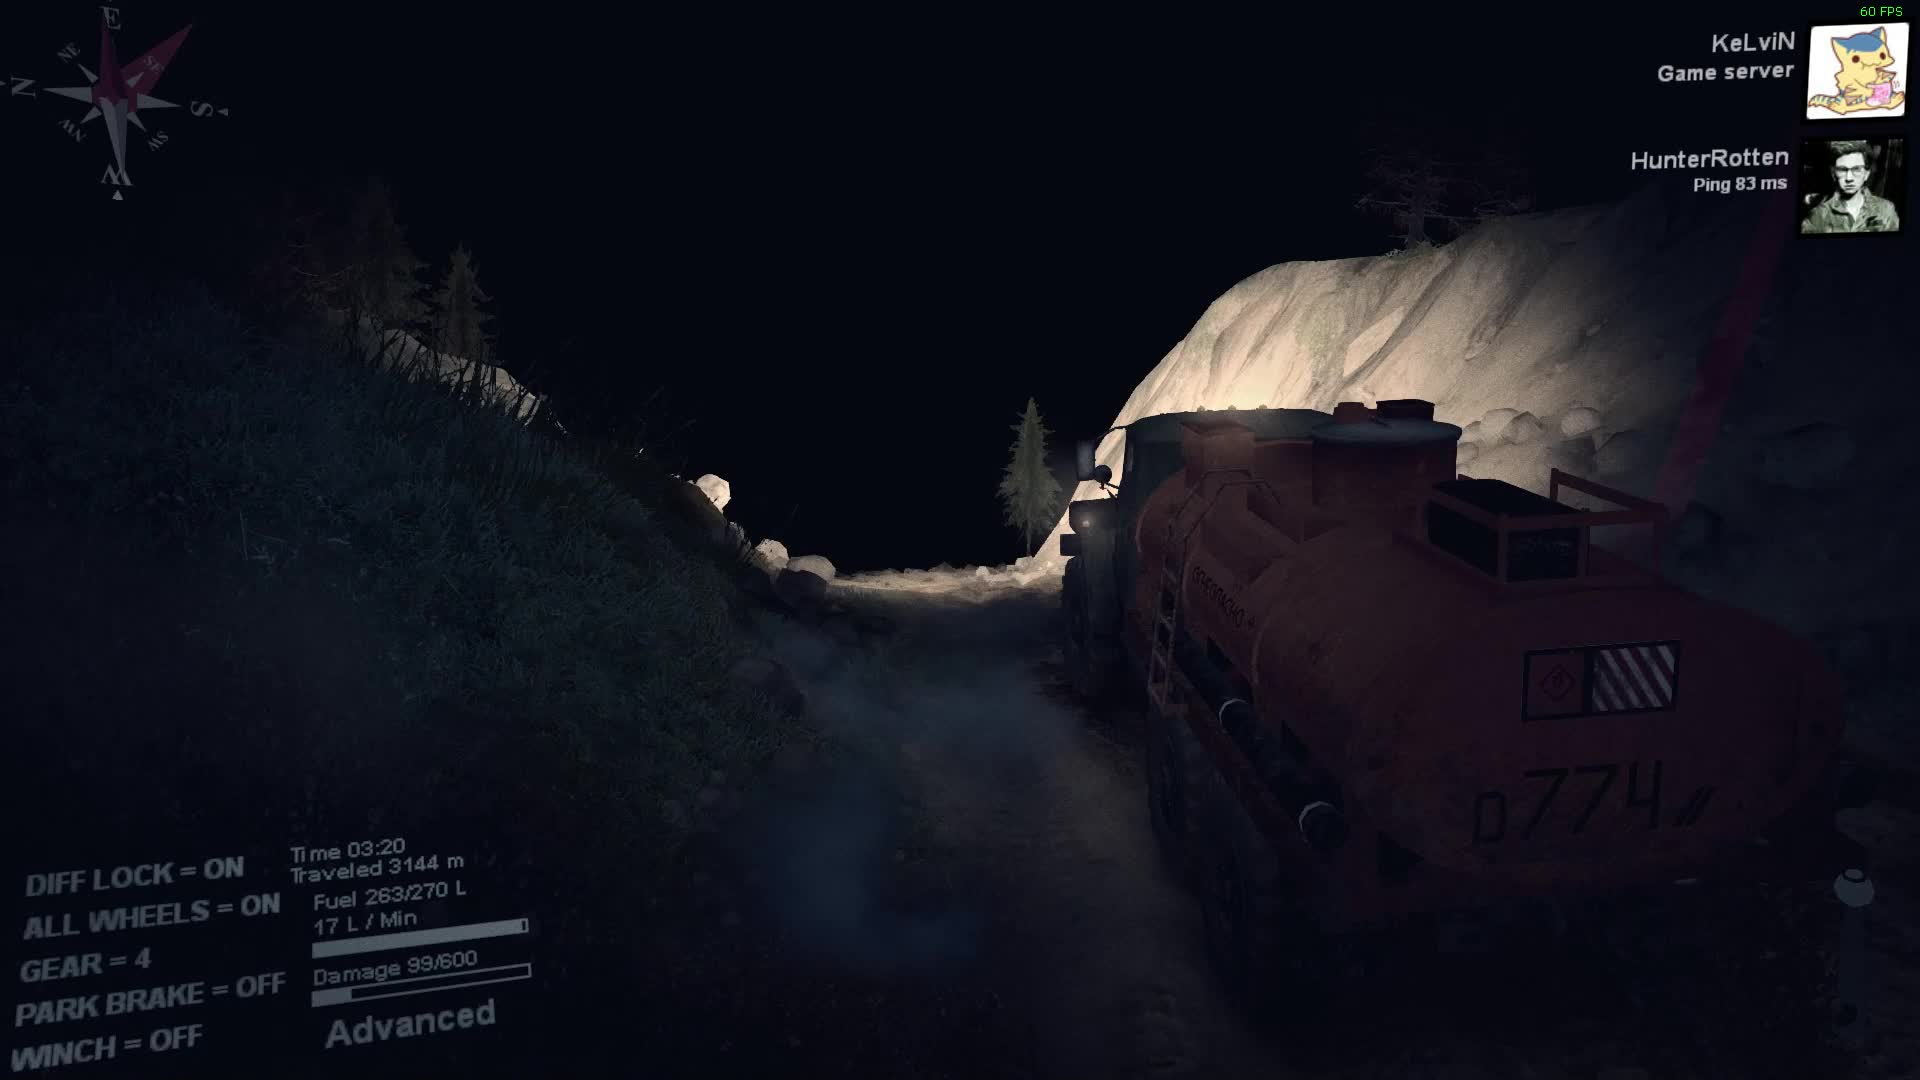 Spintires™ | Enraging roll over. GIFs